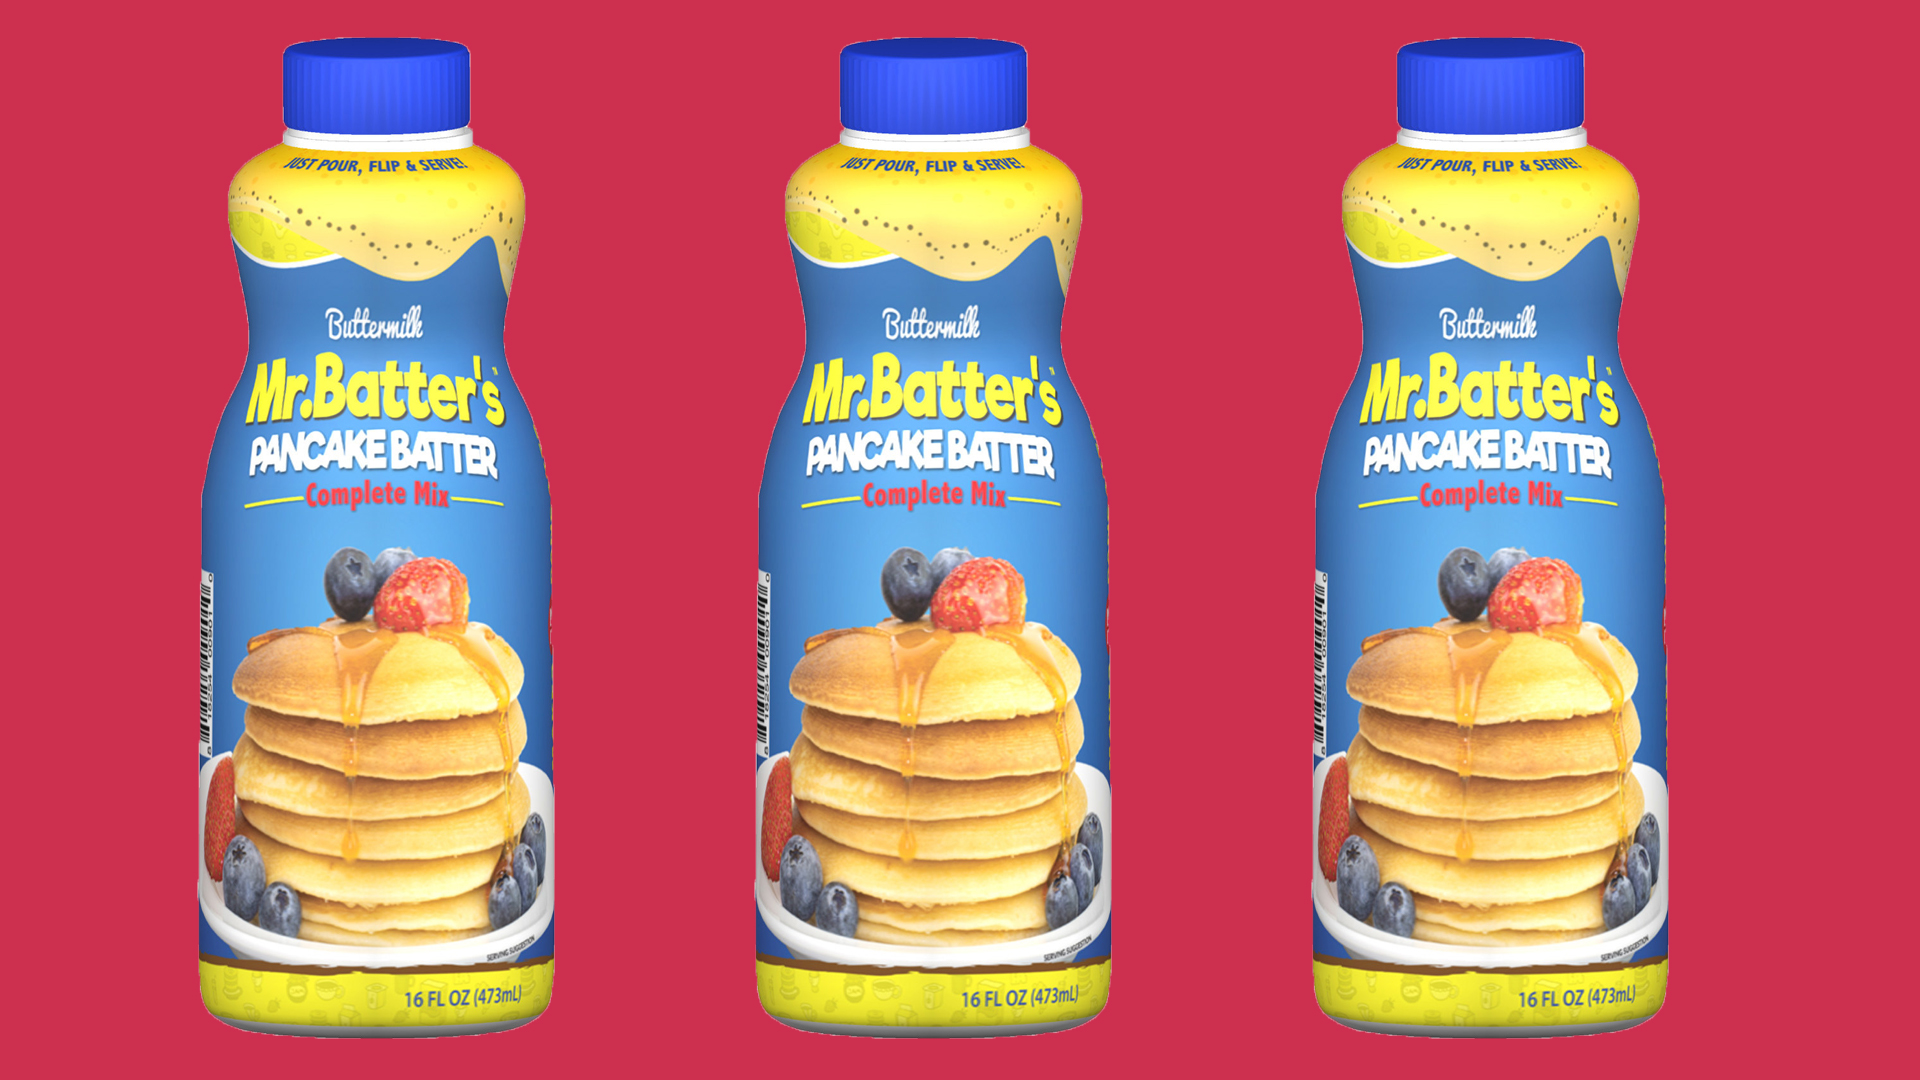 Shelf-Stable Pancake Batter Is the Latest Innovation in Pancake Technology